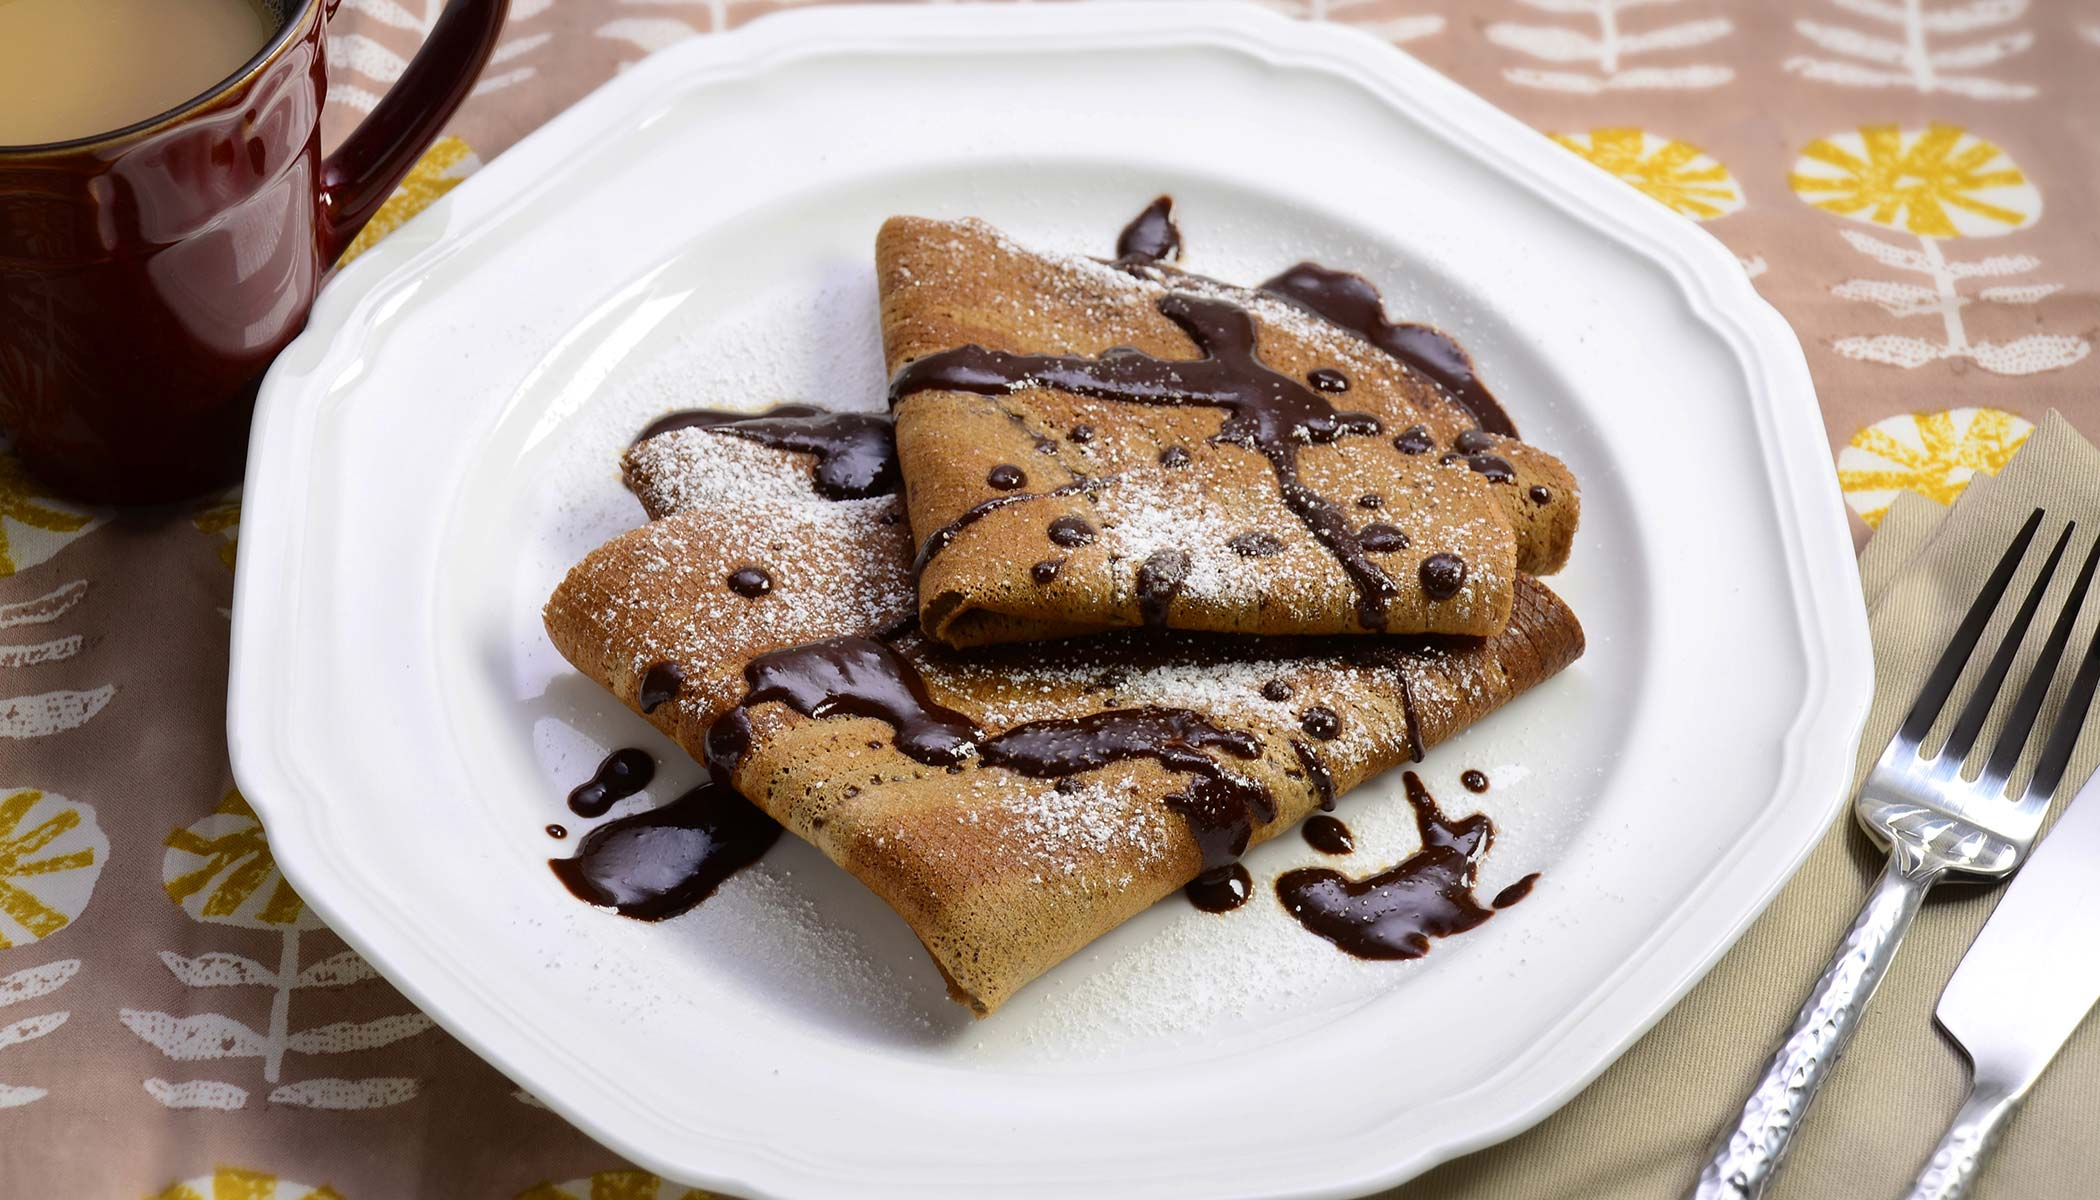 Chocolate-Chocolate Crepes